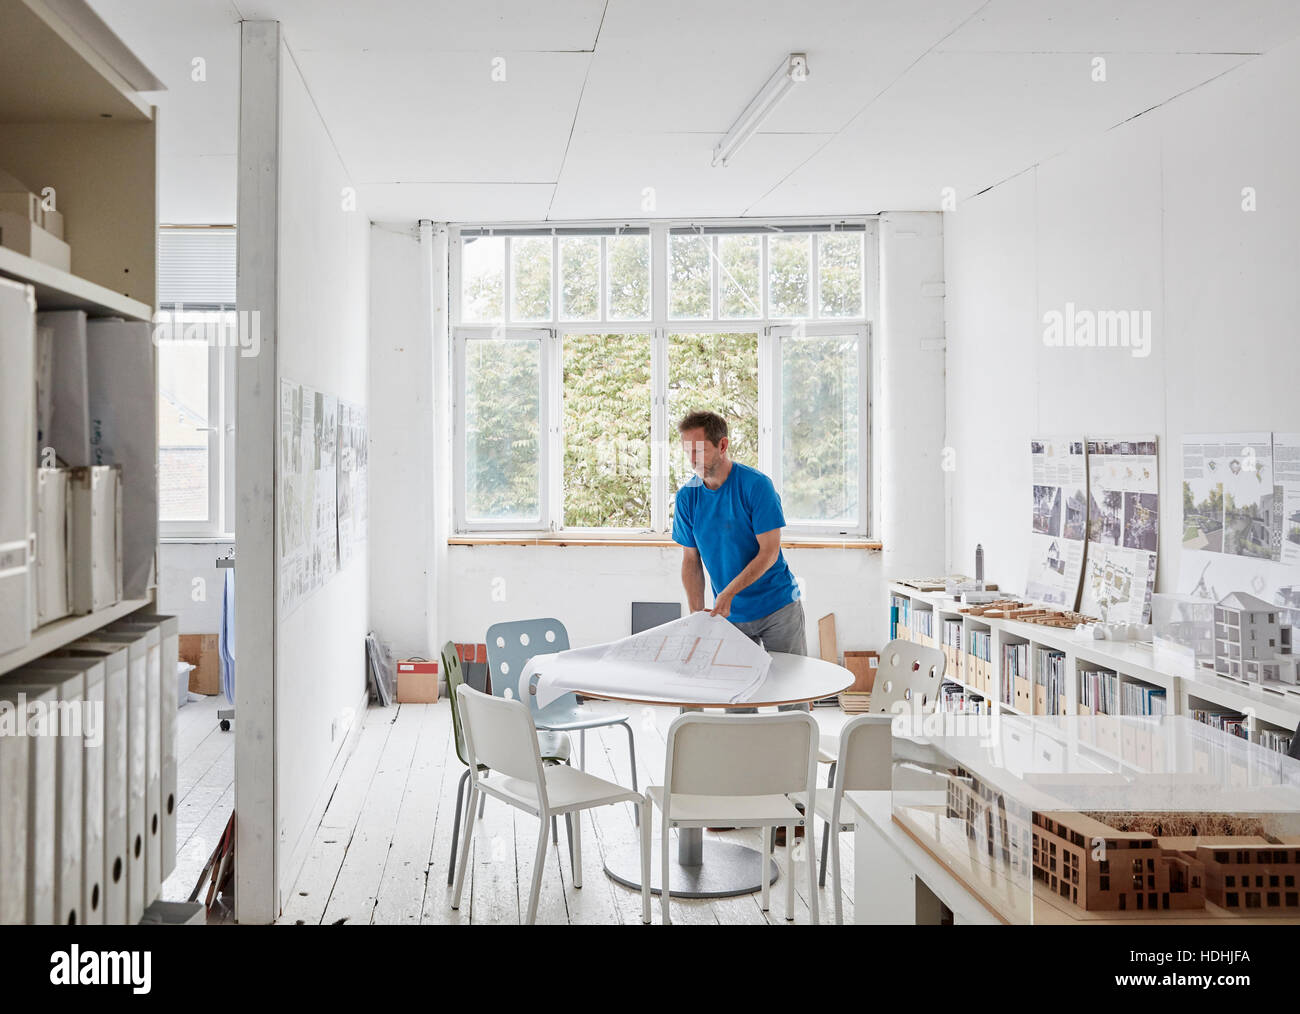 A modern office. A man looking at plans at a table, architectural drawings. Building models on shelves. Open windows. - Stock Image